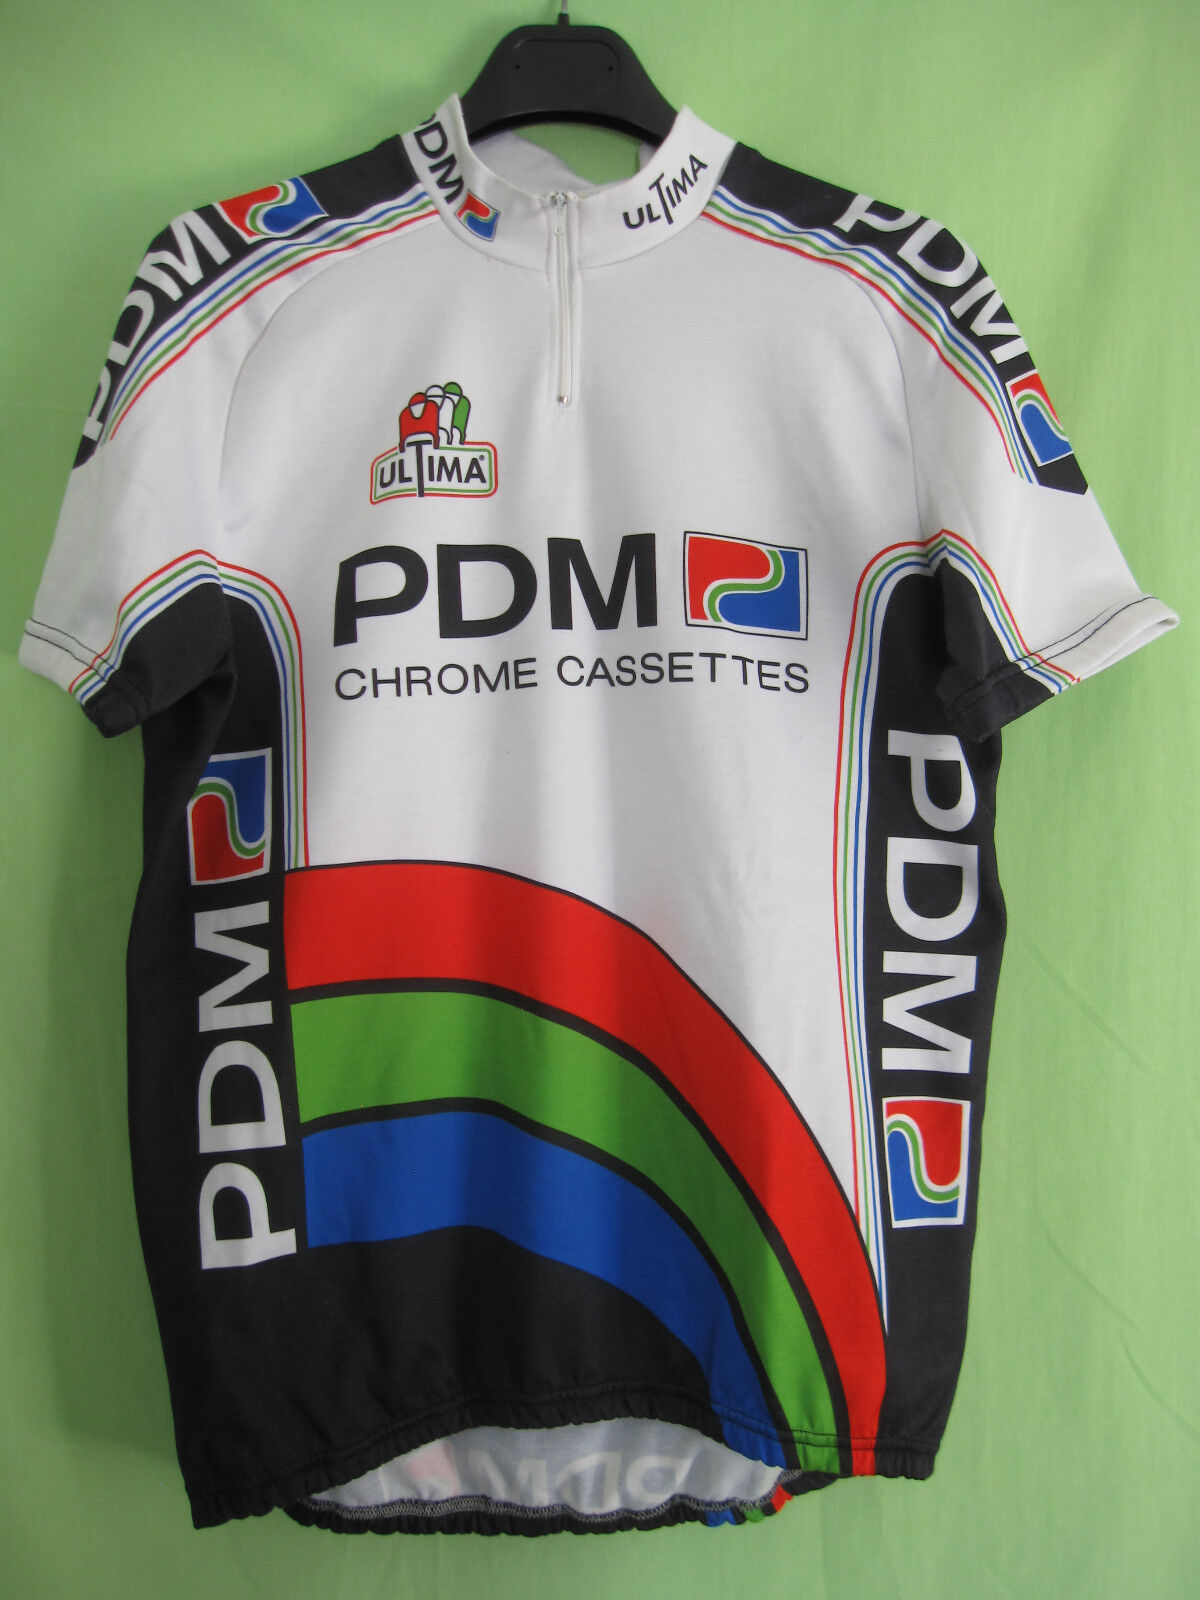 Maillot cycliste PDM Concorde Ultima Tour 1990 vintage jersey Cycling - L